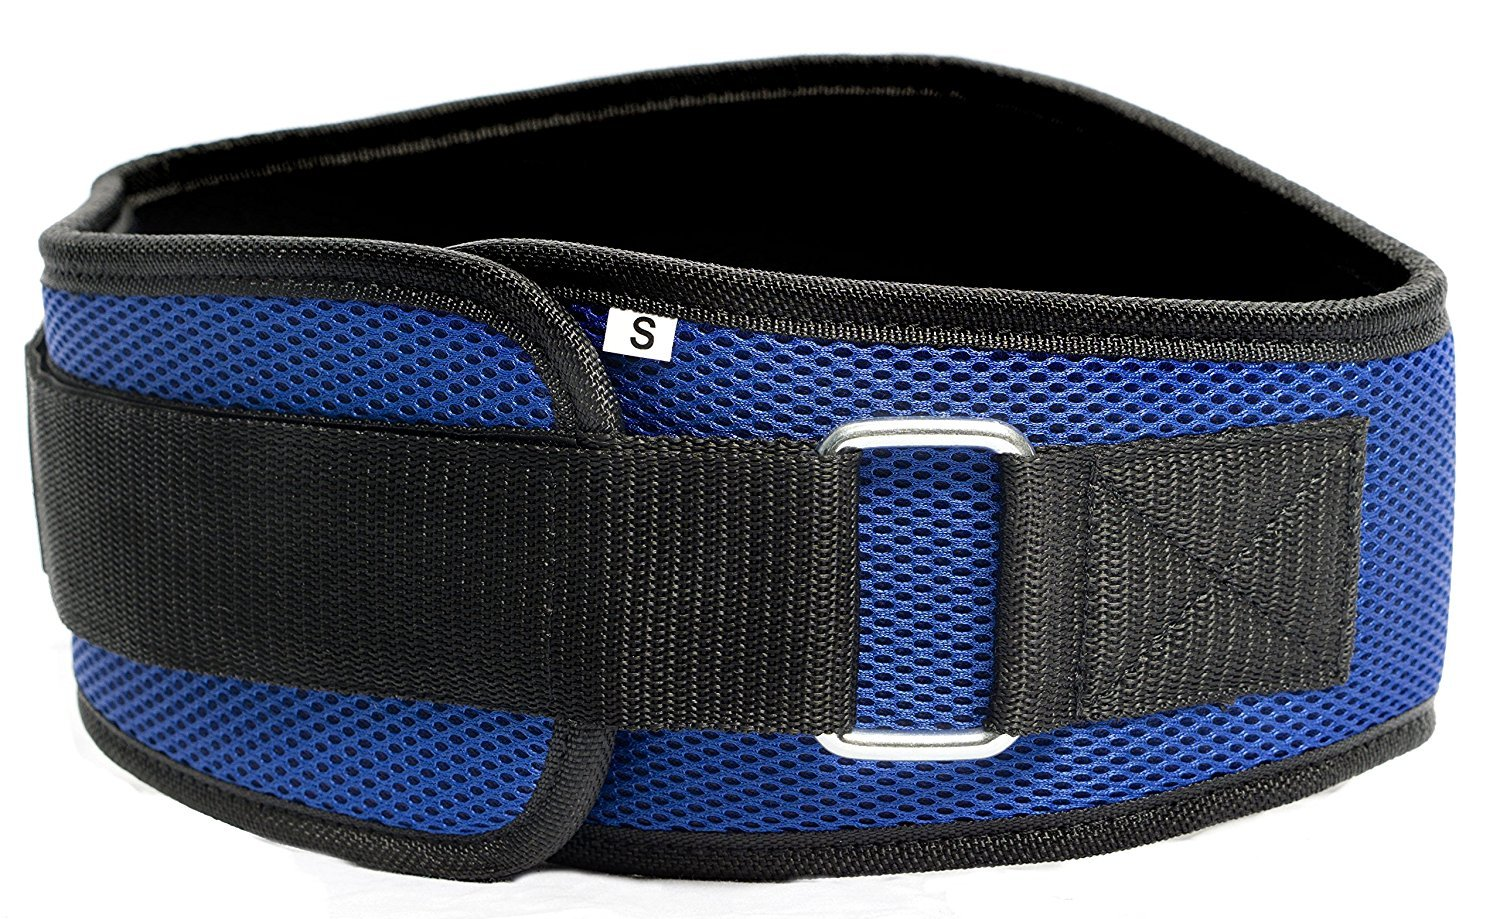 | Thick Lower Back /& Core Support For Men /& Women 6 wide Fully Adjustable Weight lifting Belt Powerlifting Olympic Lifting Deadlifts /& Squats Crossfit Workout Belt Essential For Weightlifting